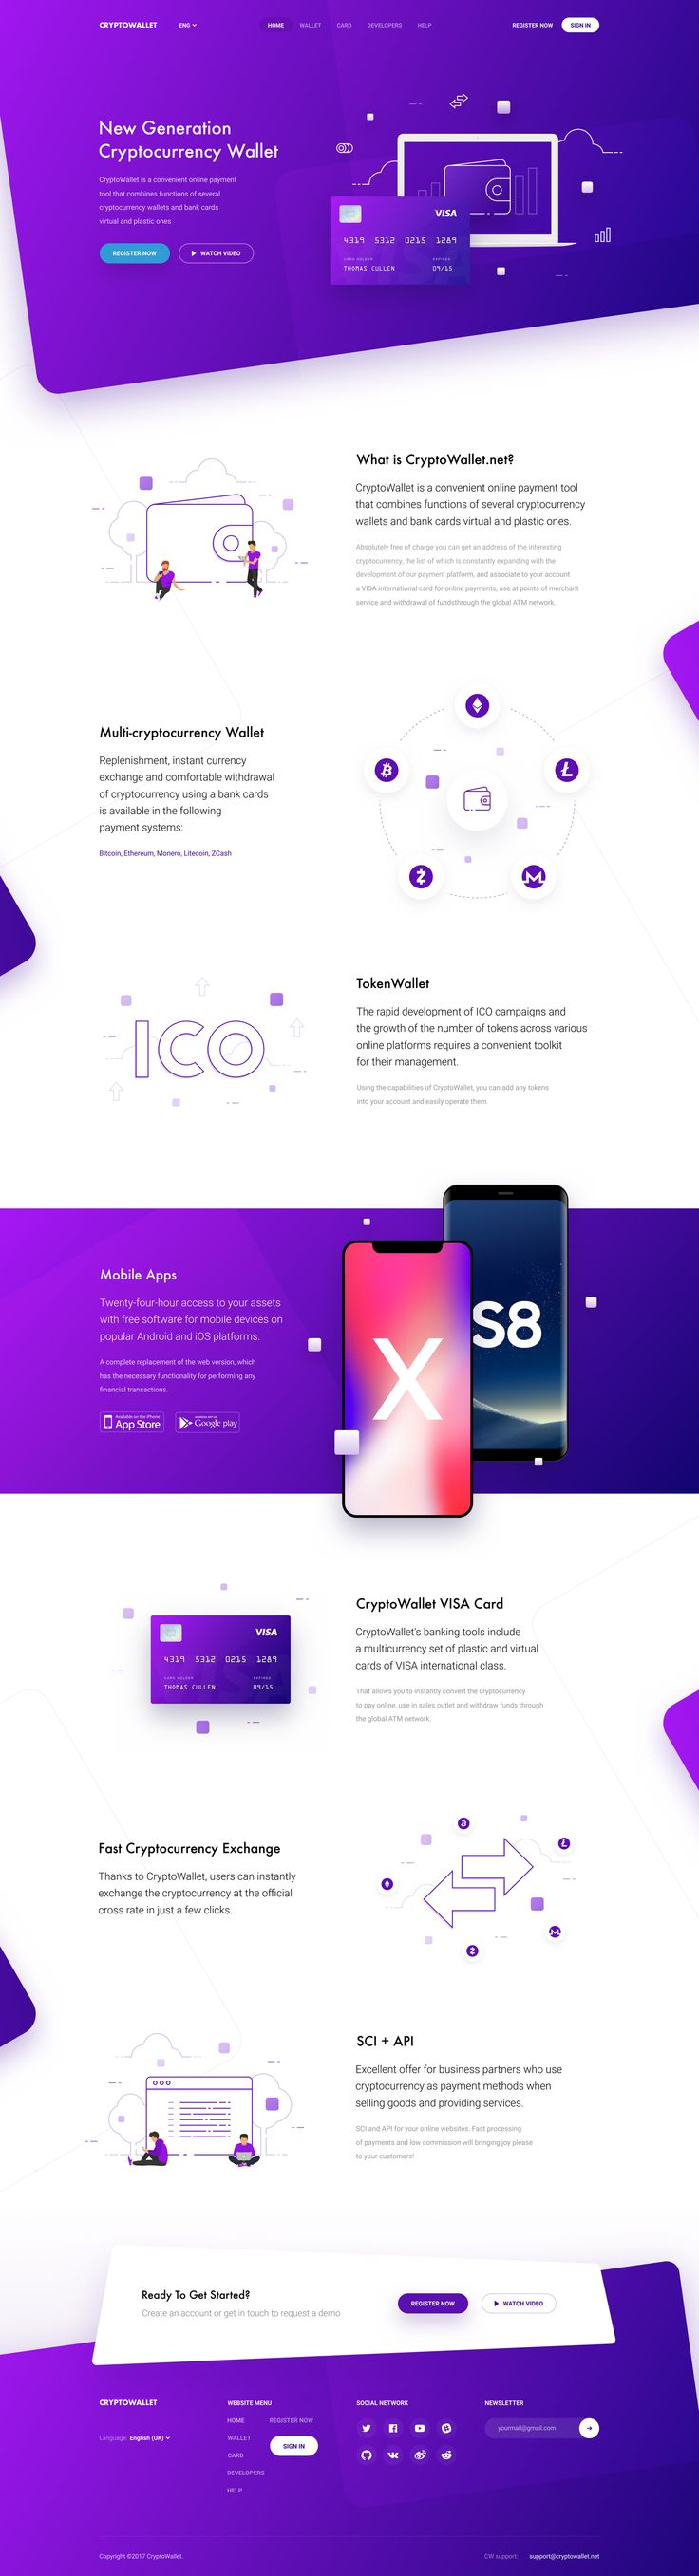 UI Inspiration: This week's selections from Outcrowd, Nicola Baldo and more